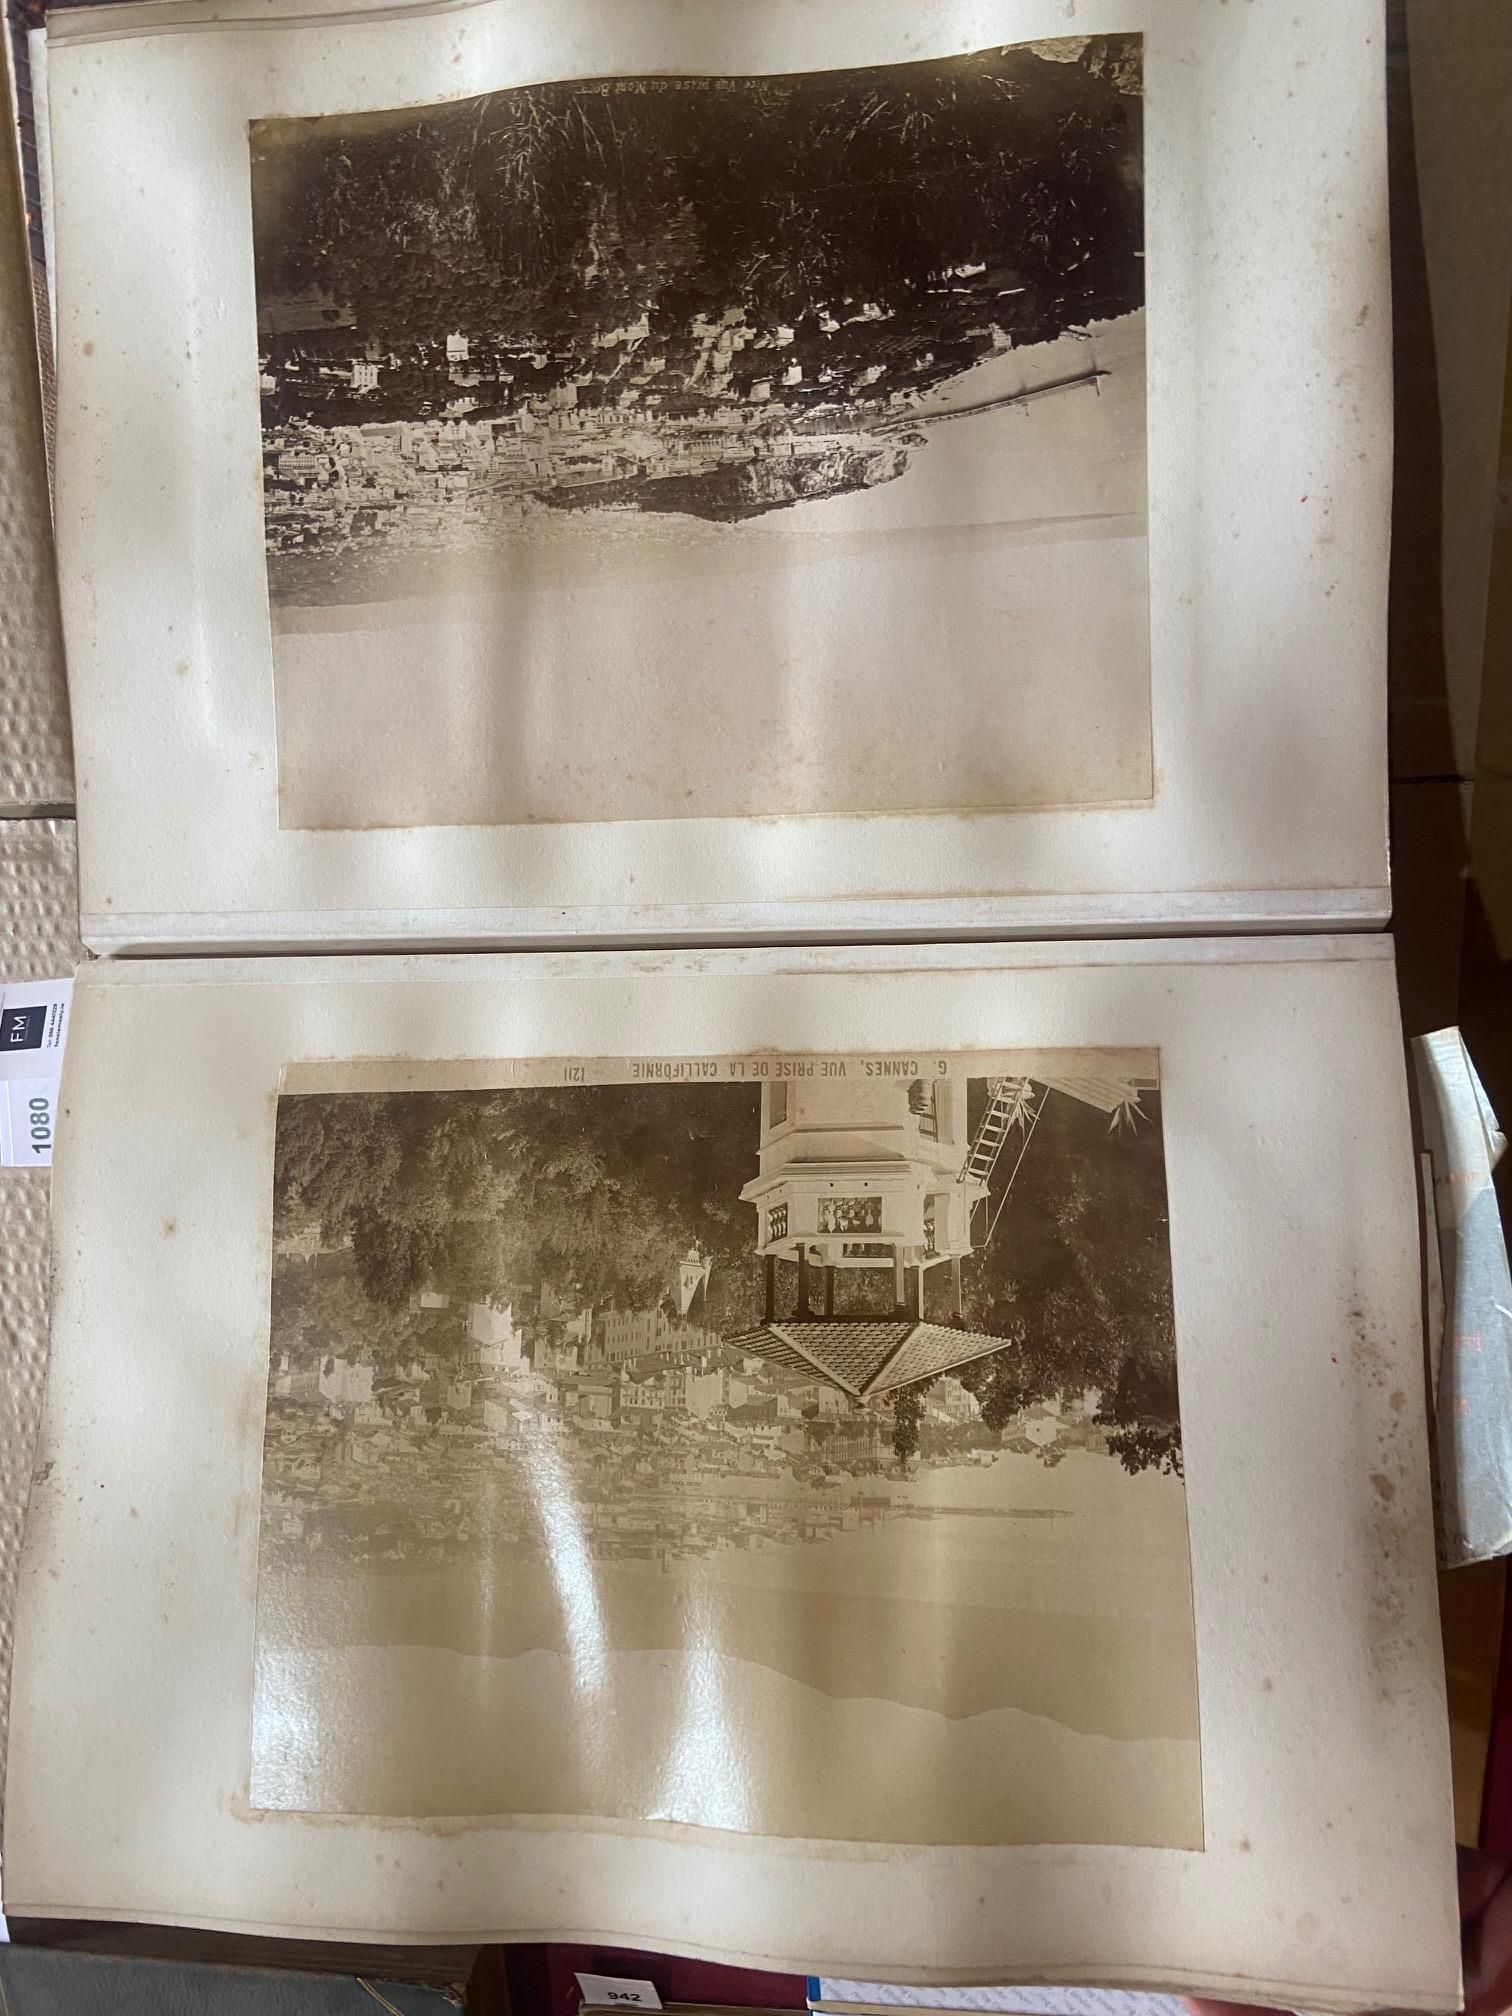 Photographs: Two large folio Albums of Photographs, each c. 1870 - 1890's. One Album contains - Image 28 of 31